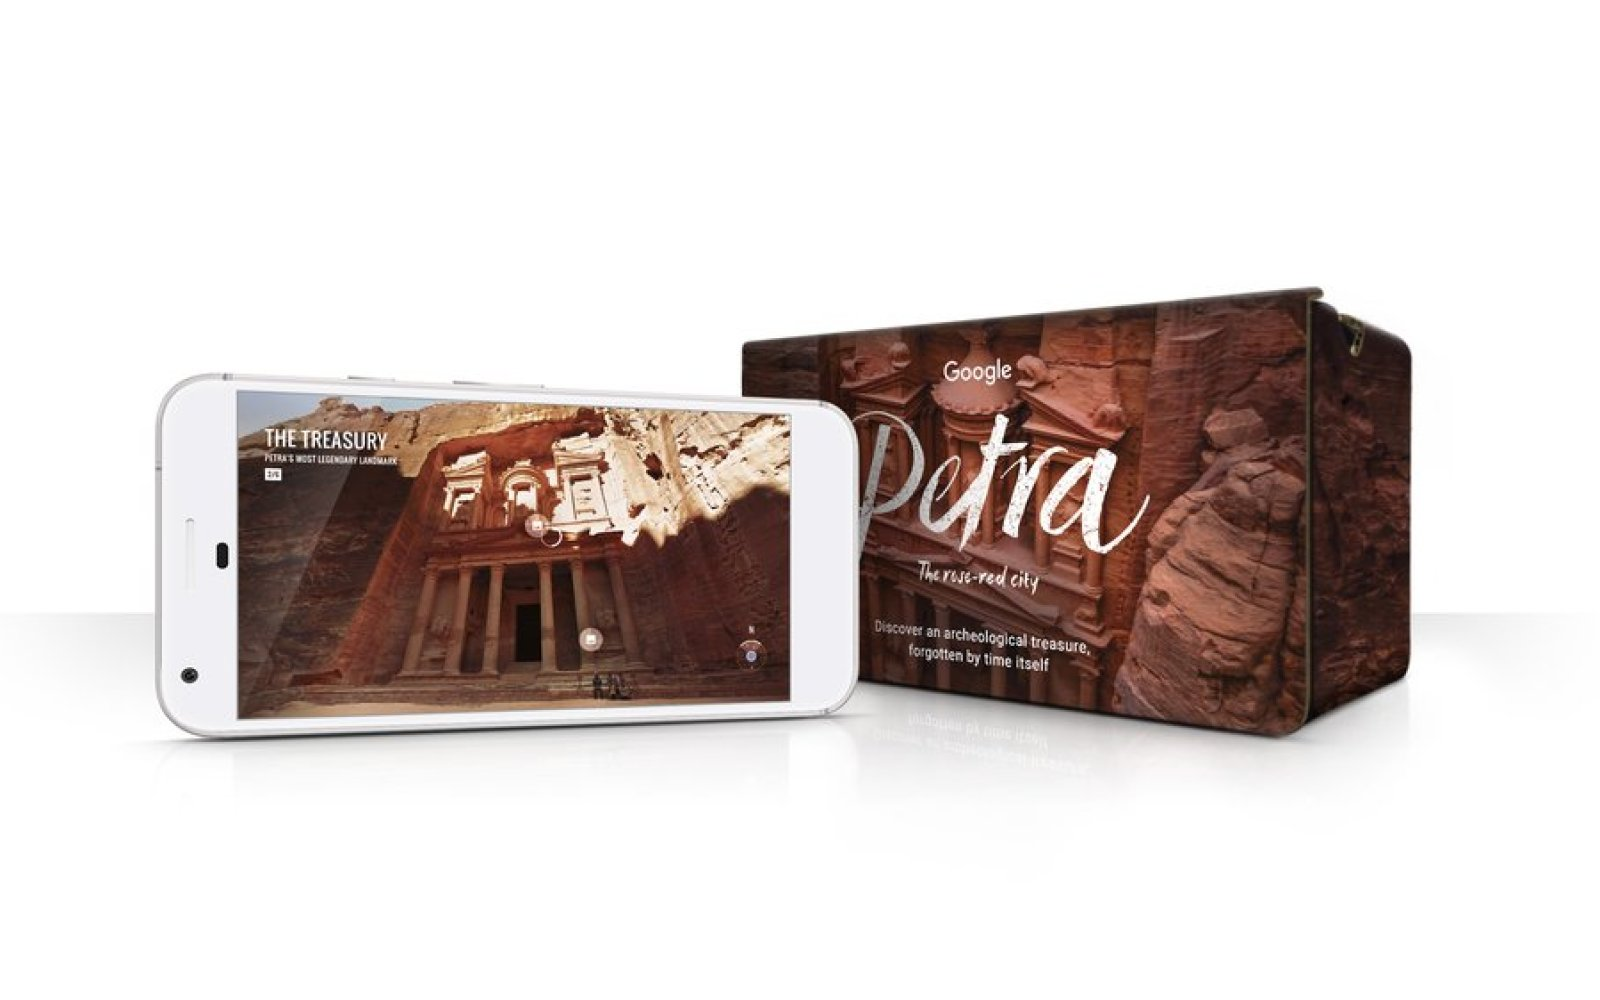 You can now explore the wonders of the ancient city of Petra with Google Cardboard